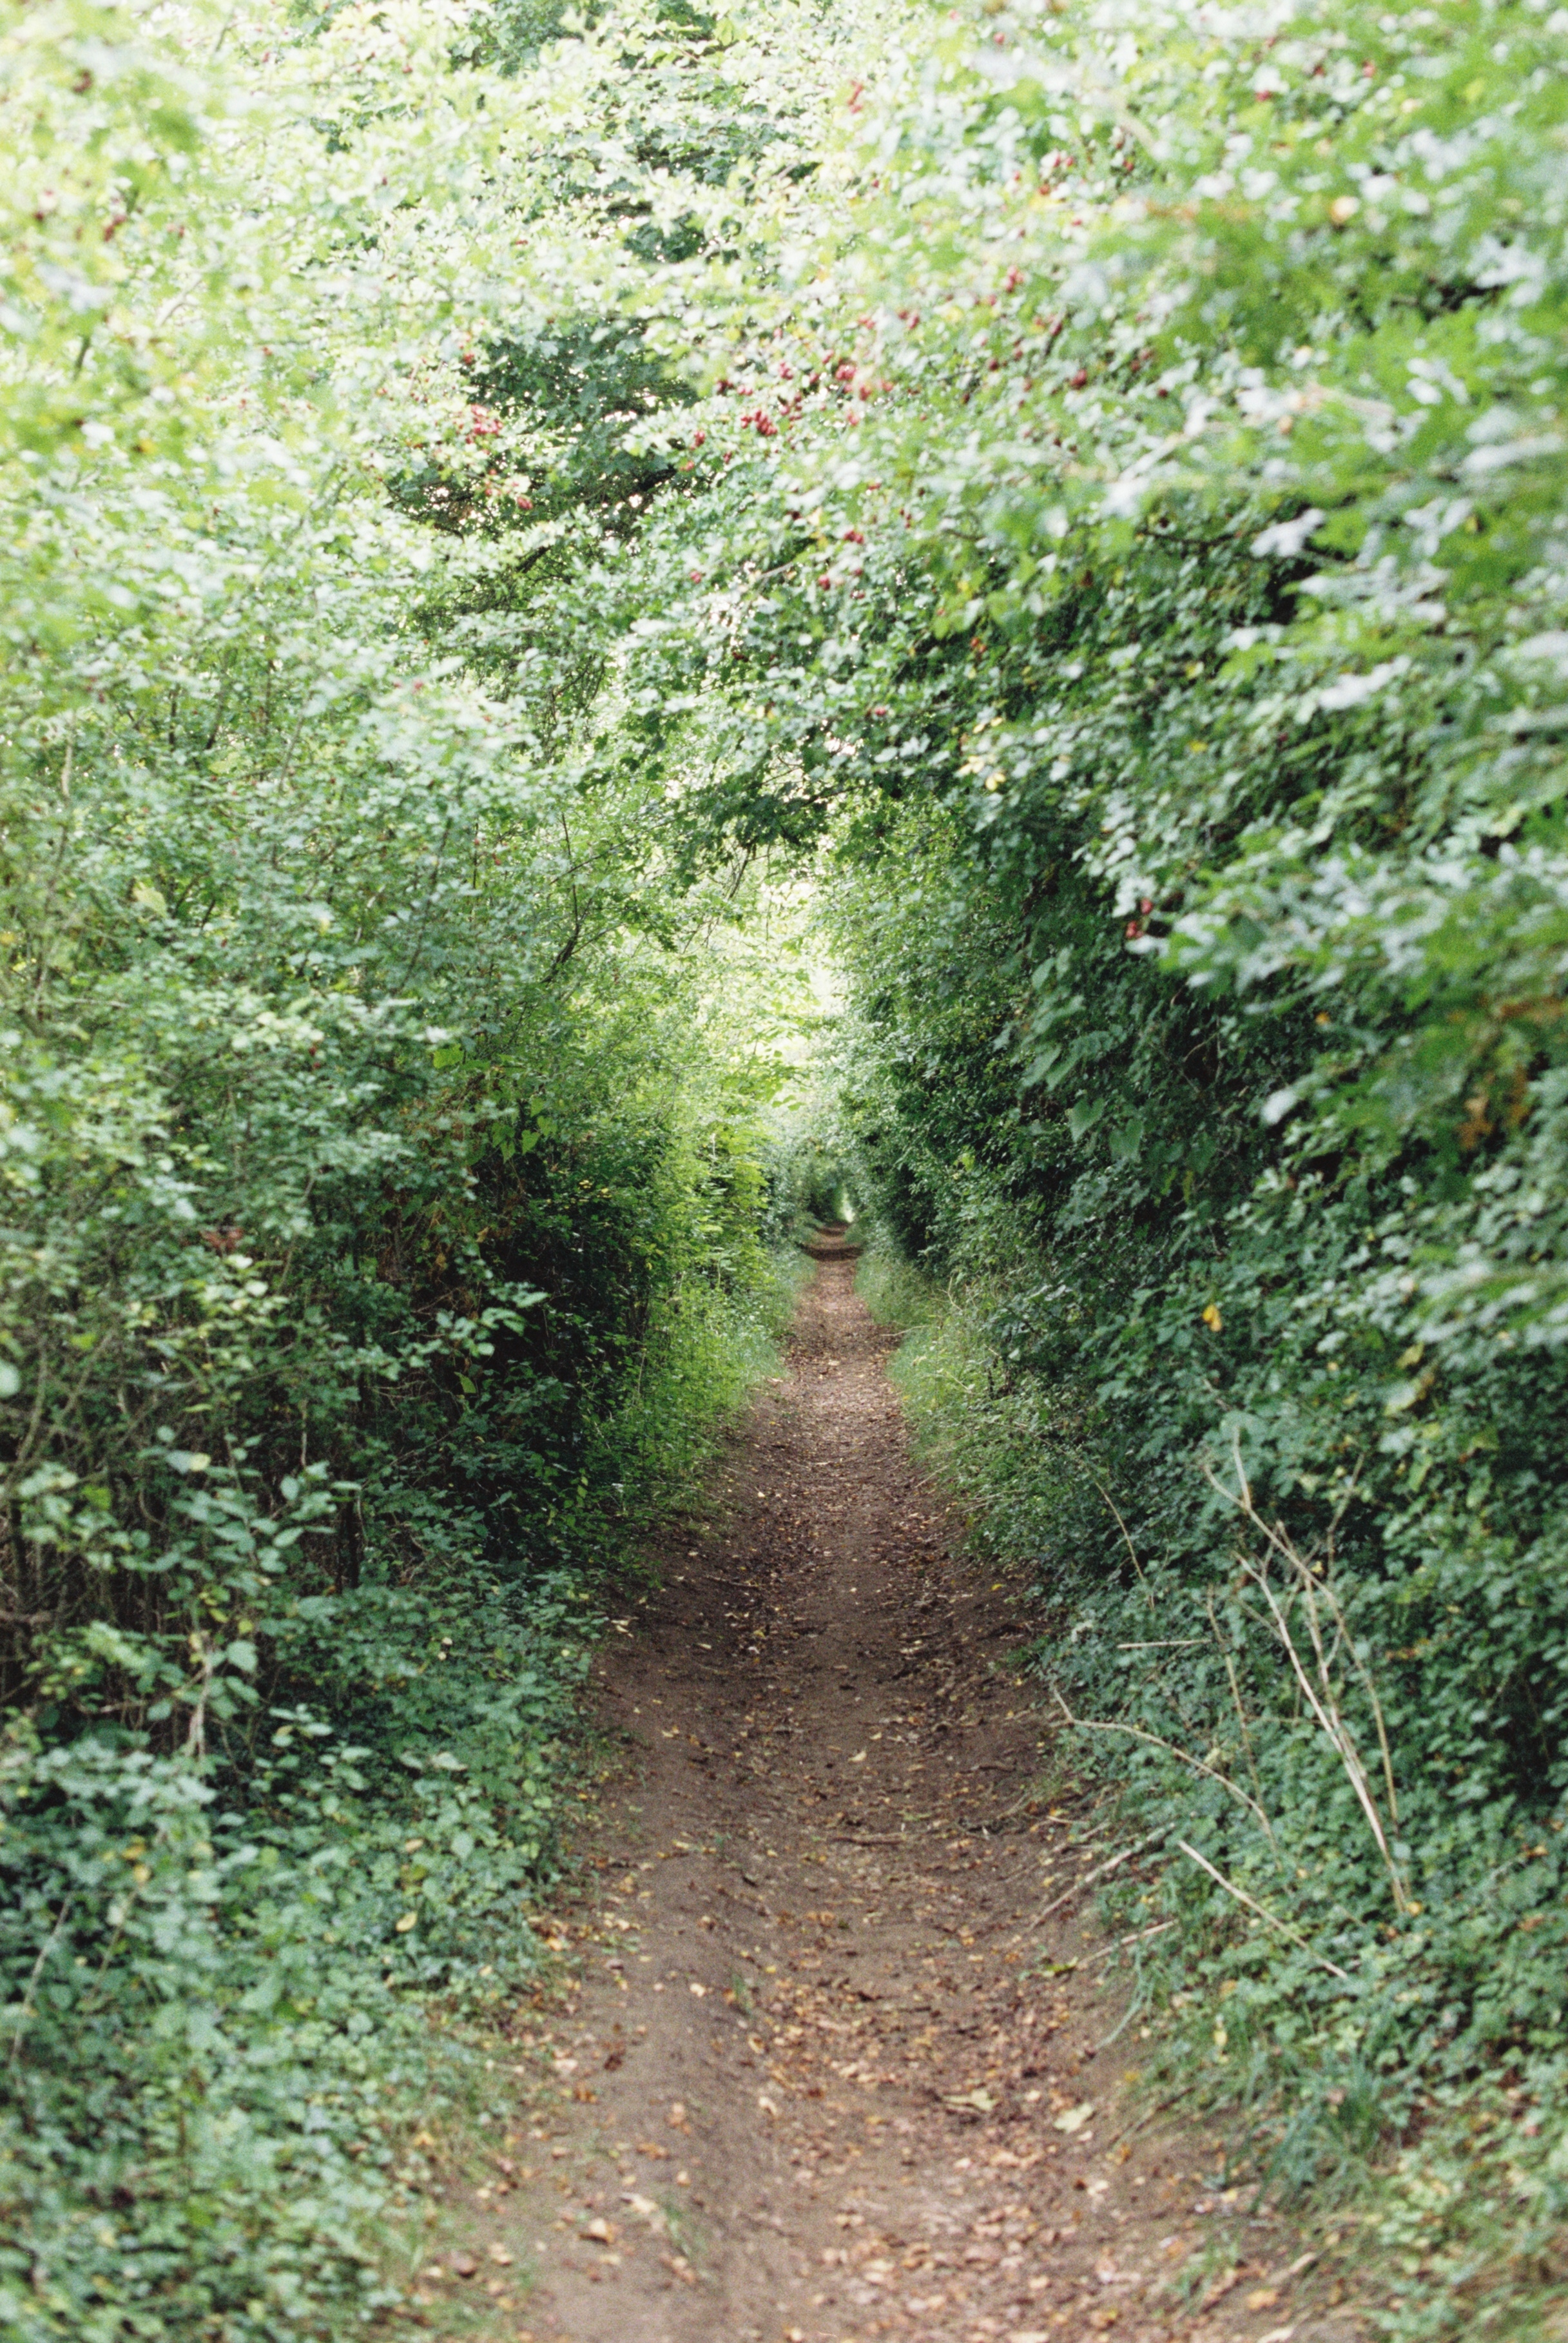 arched-tunnel-greenery-in-the-cotswolds